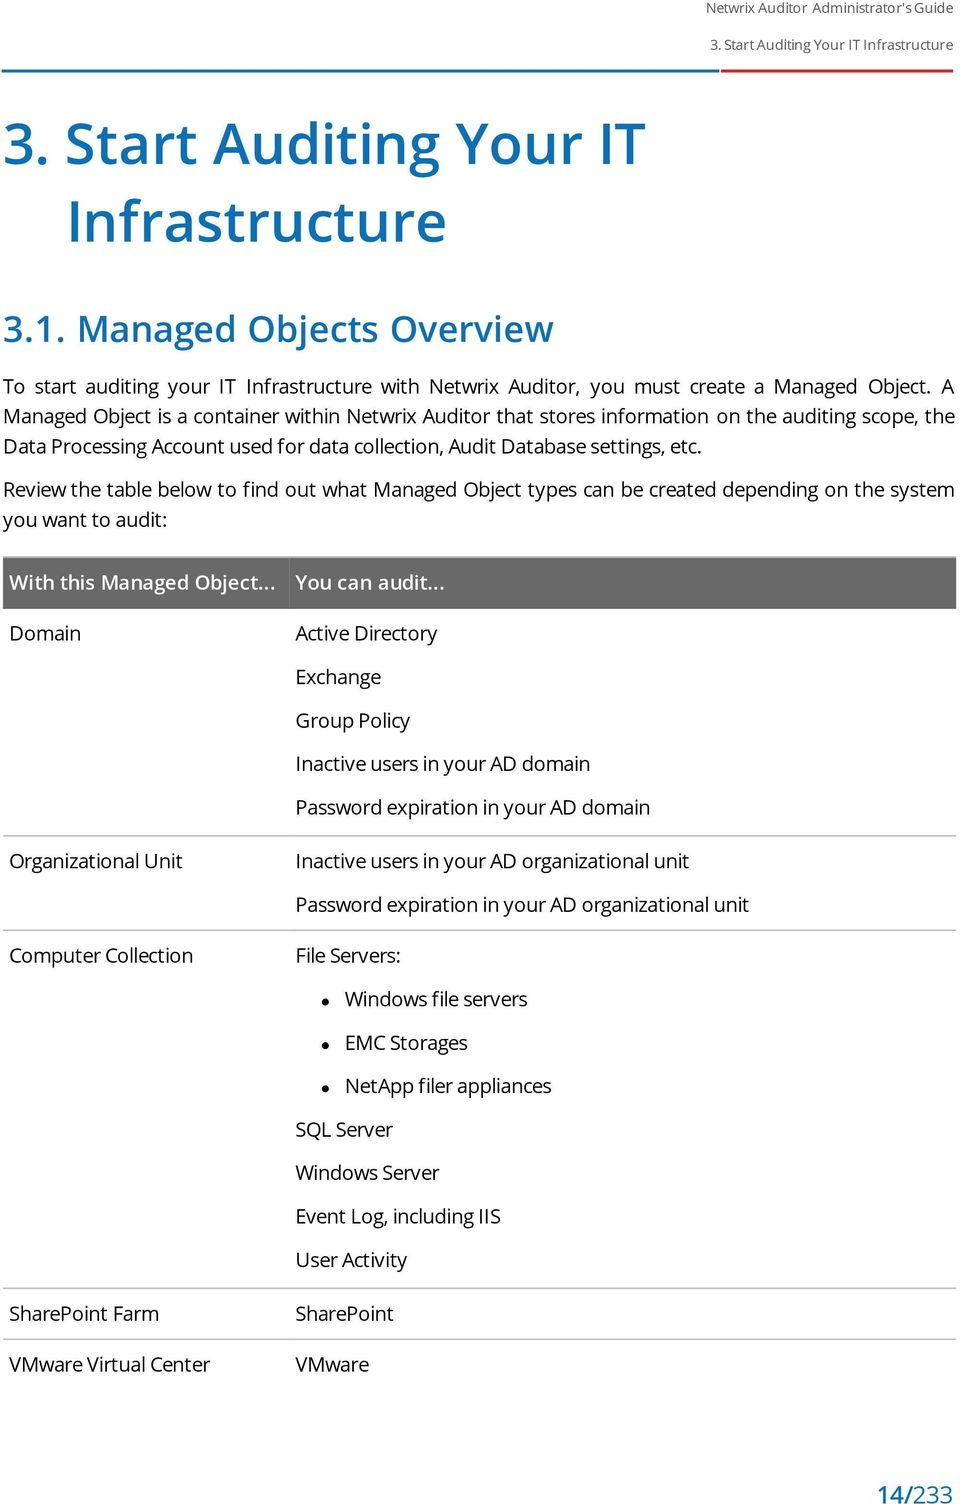 A Managed Object is a container within Netwrix Auditor that stores information on the auditing scope, the Data Processing Account used for data collection, Audit Database settings, etc.